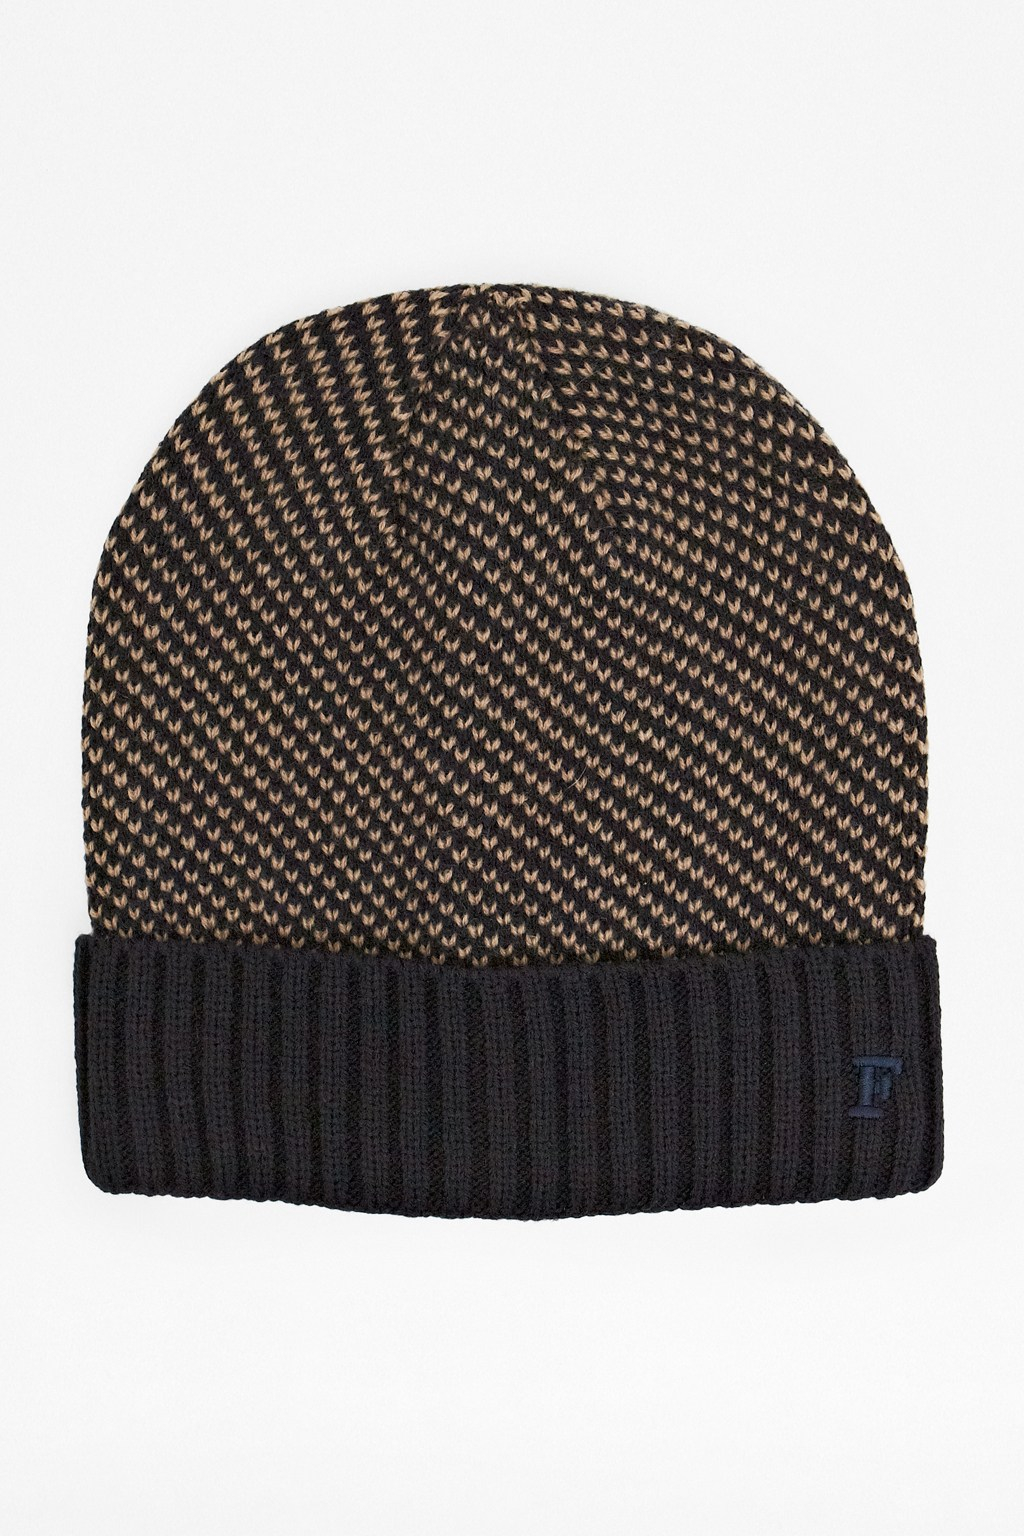 French Connection Luke Birdseye Stitch Hat in Blue for Men - Lyst 099fac7275cd